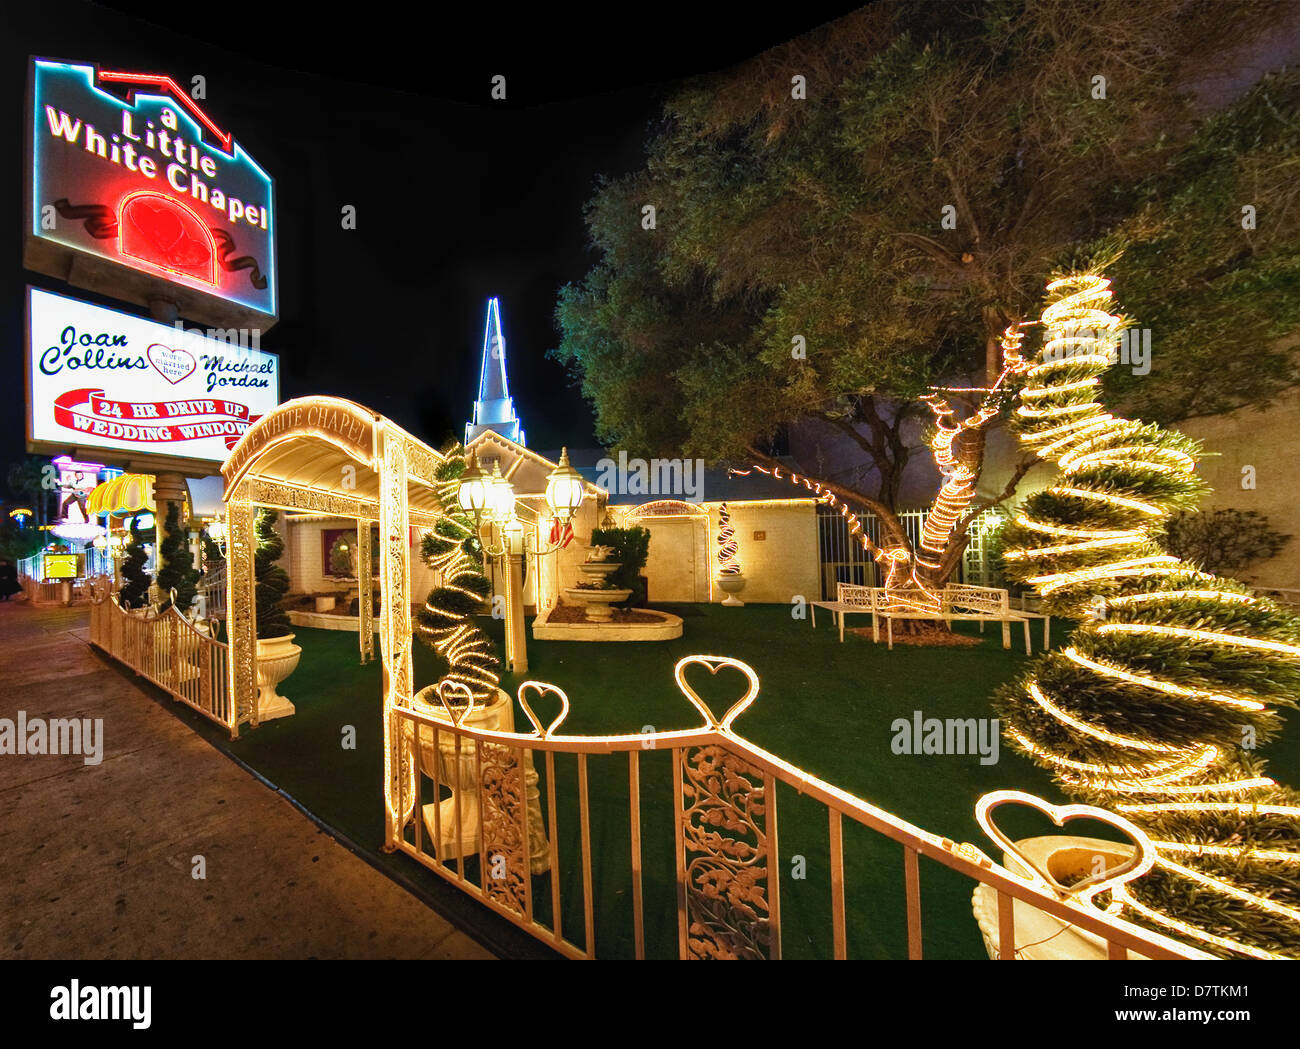 stock photo viva las vegas wedding chapel and limo statosphere tower vegas wedding chapels The Little White Wedding Chapel at night Las Vegas Nevada Stock Photo